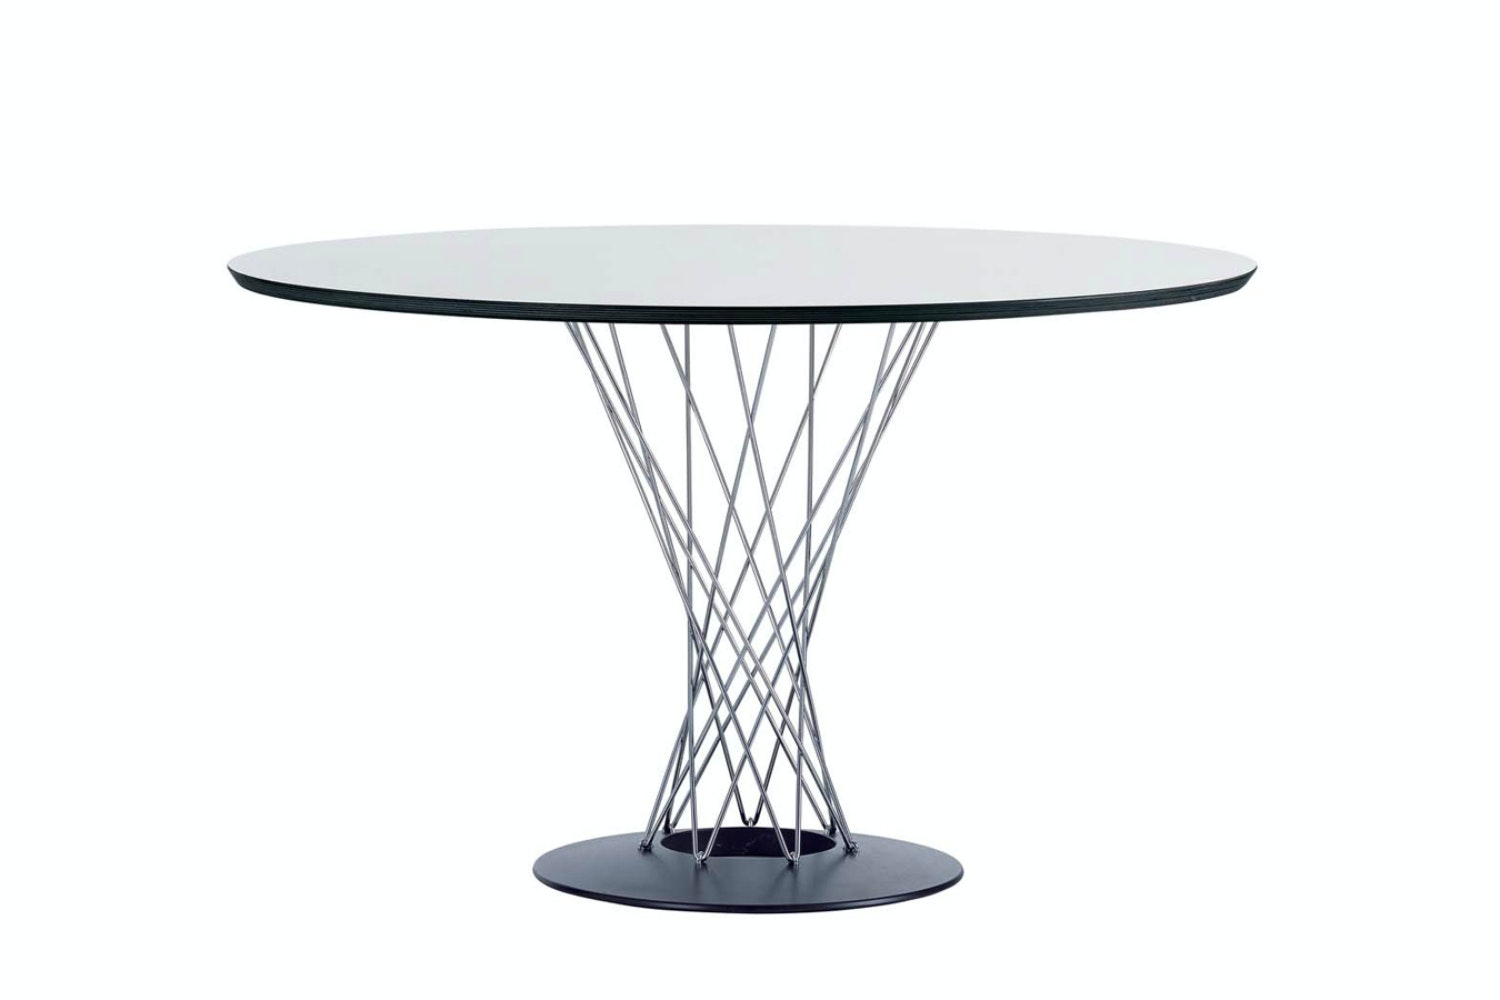 Dining Table by Isamu Noguchi for Vitra